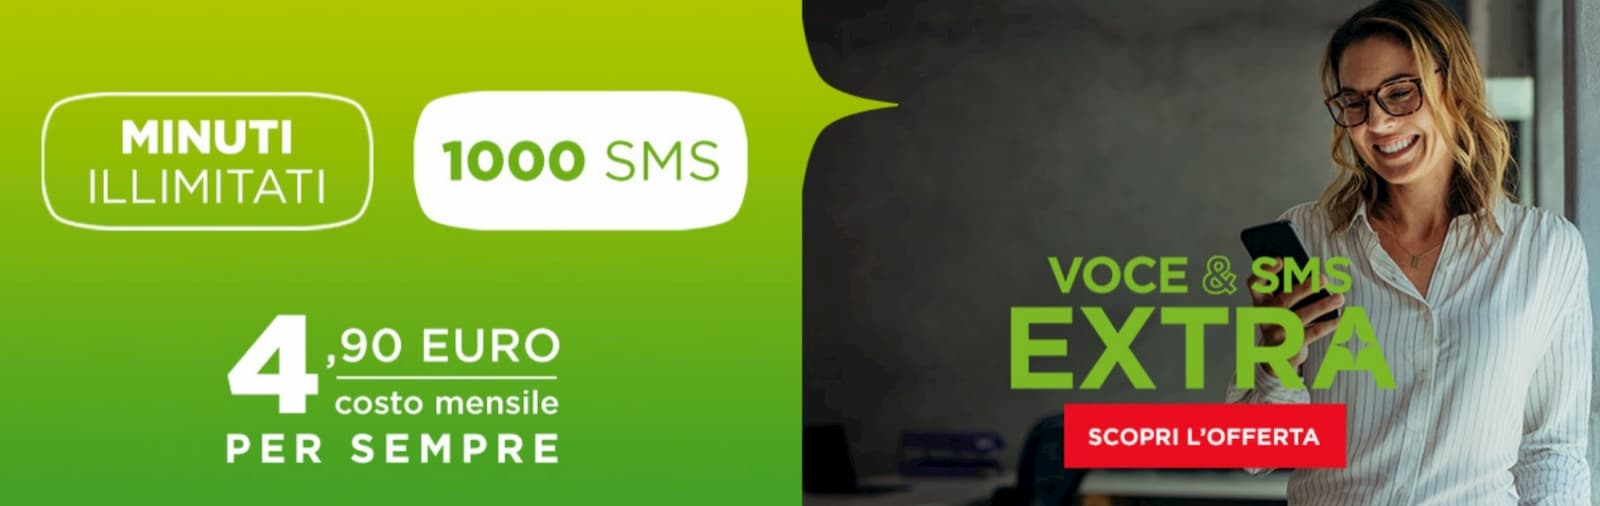 CoopVoce Voce & SMS EXTRA